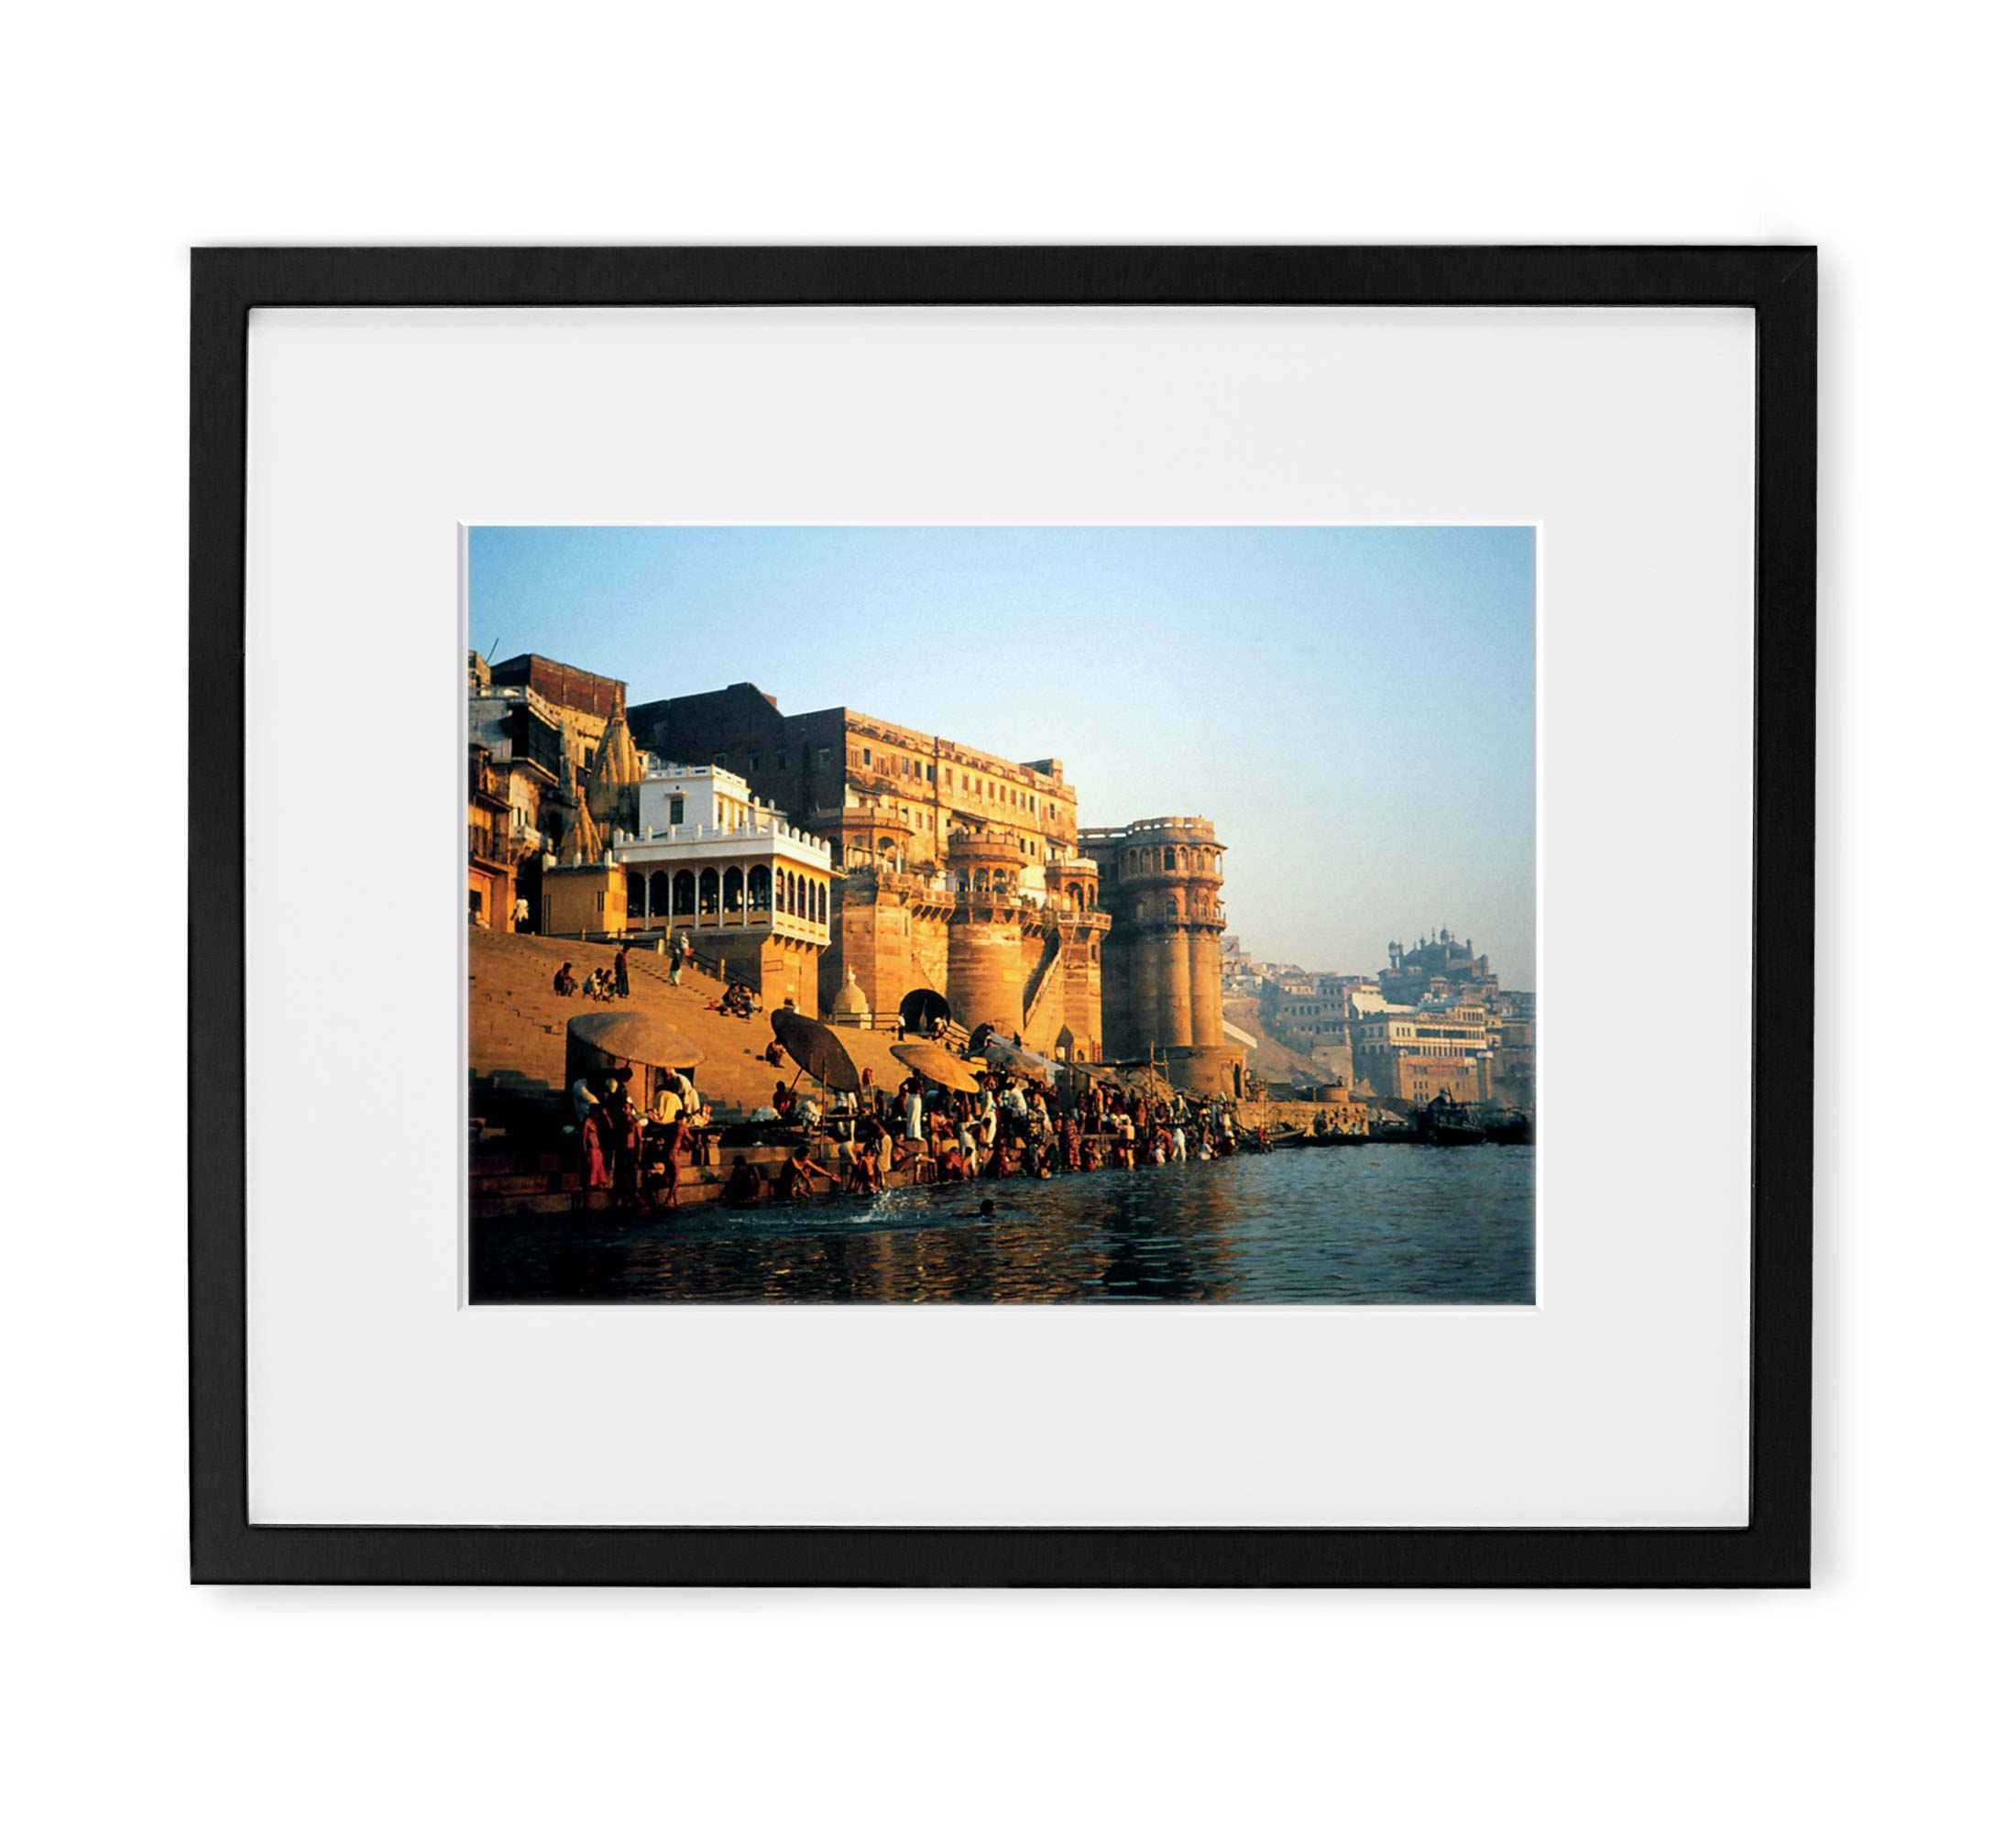 Golden Ganges Framed Black Wood